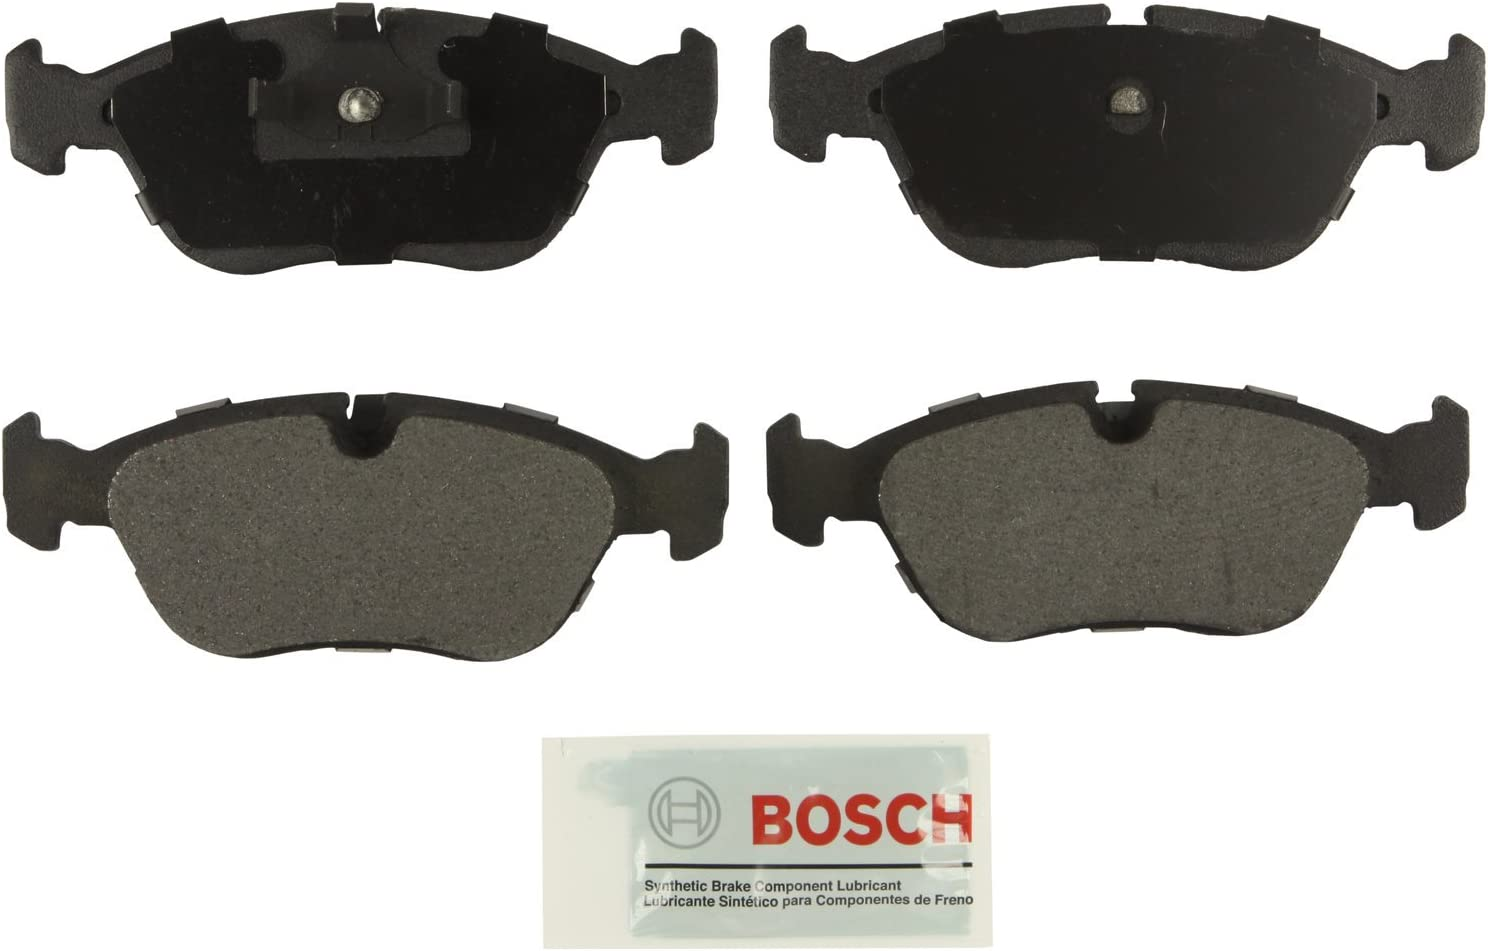 Bosch BE794 Front Disc Brake Pads